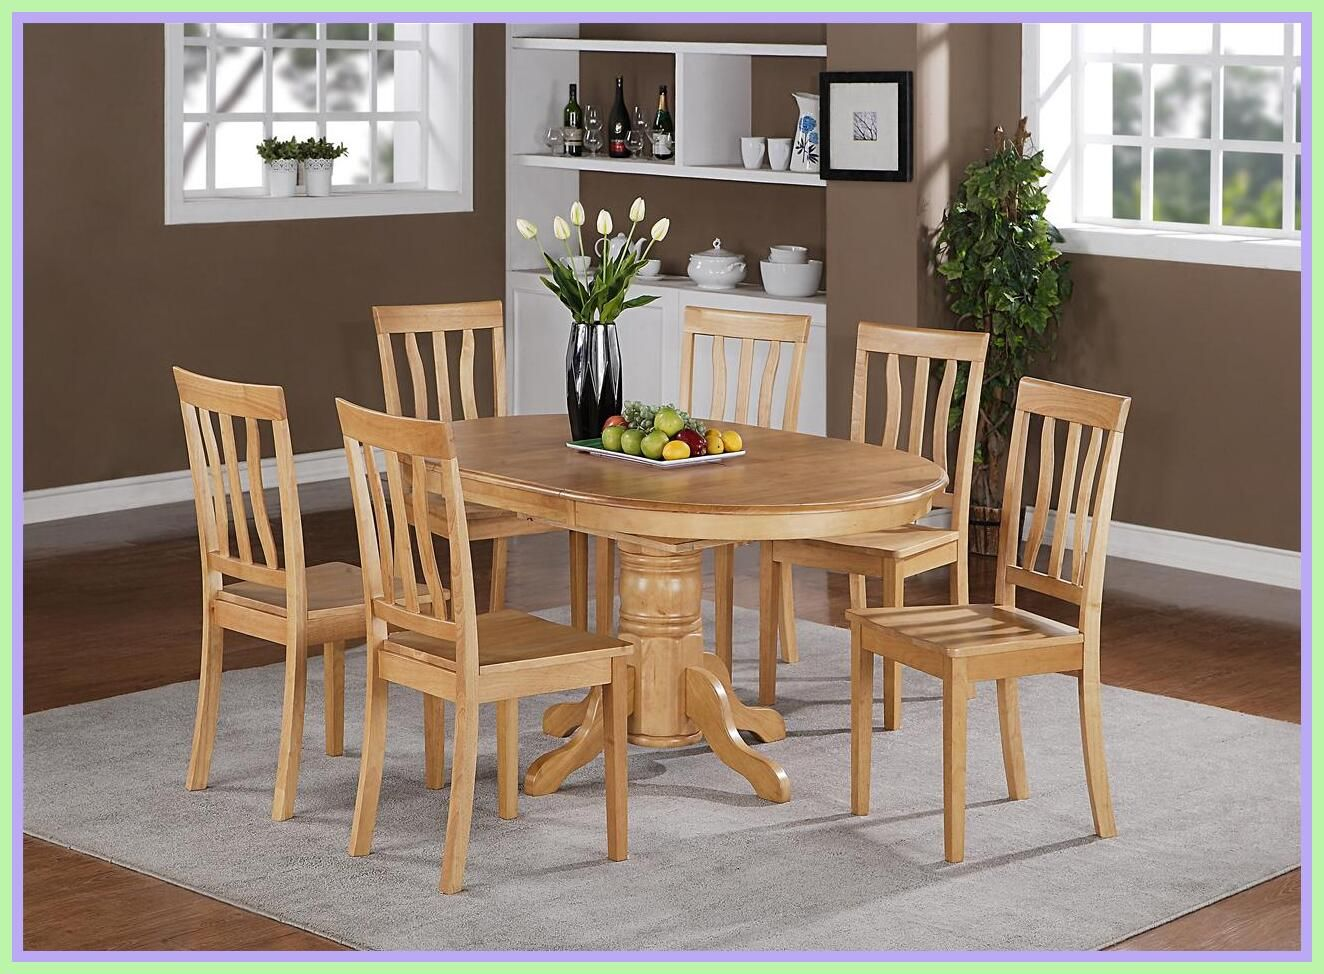 Coastlink Vegas Round To Oval Dining Table Set For 6 Heritage Slat Back Chairs Click Image For More Det Oval Table Dining Round Dining Room Dining Room Sets